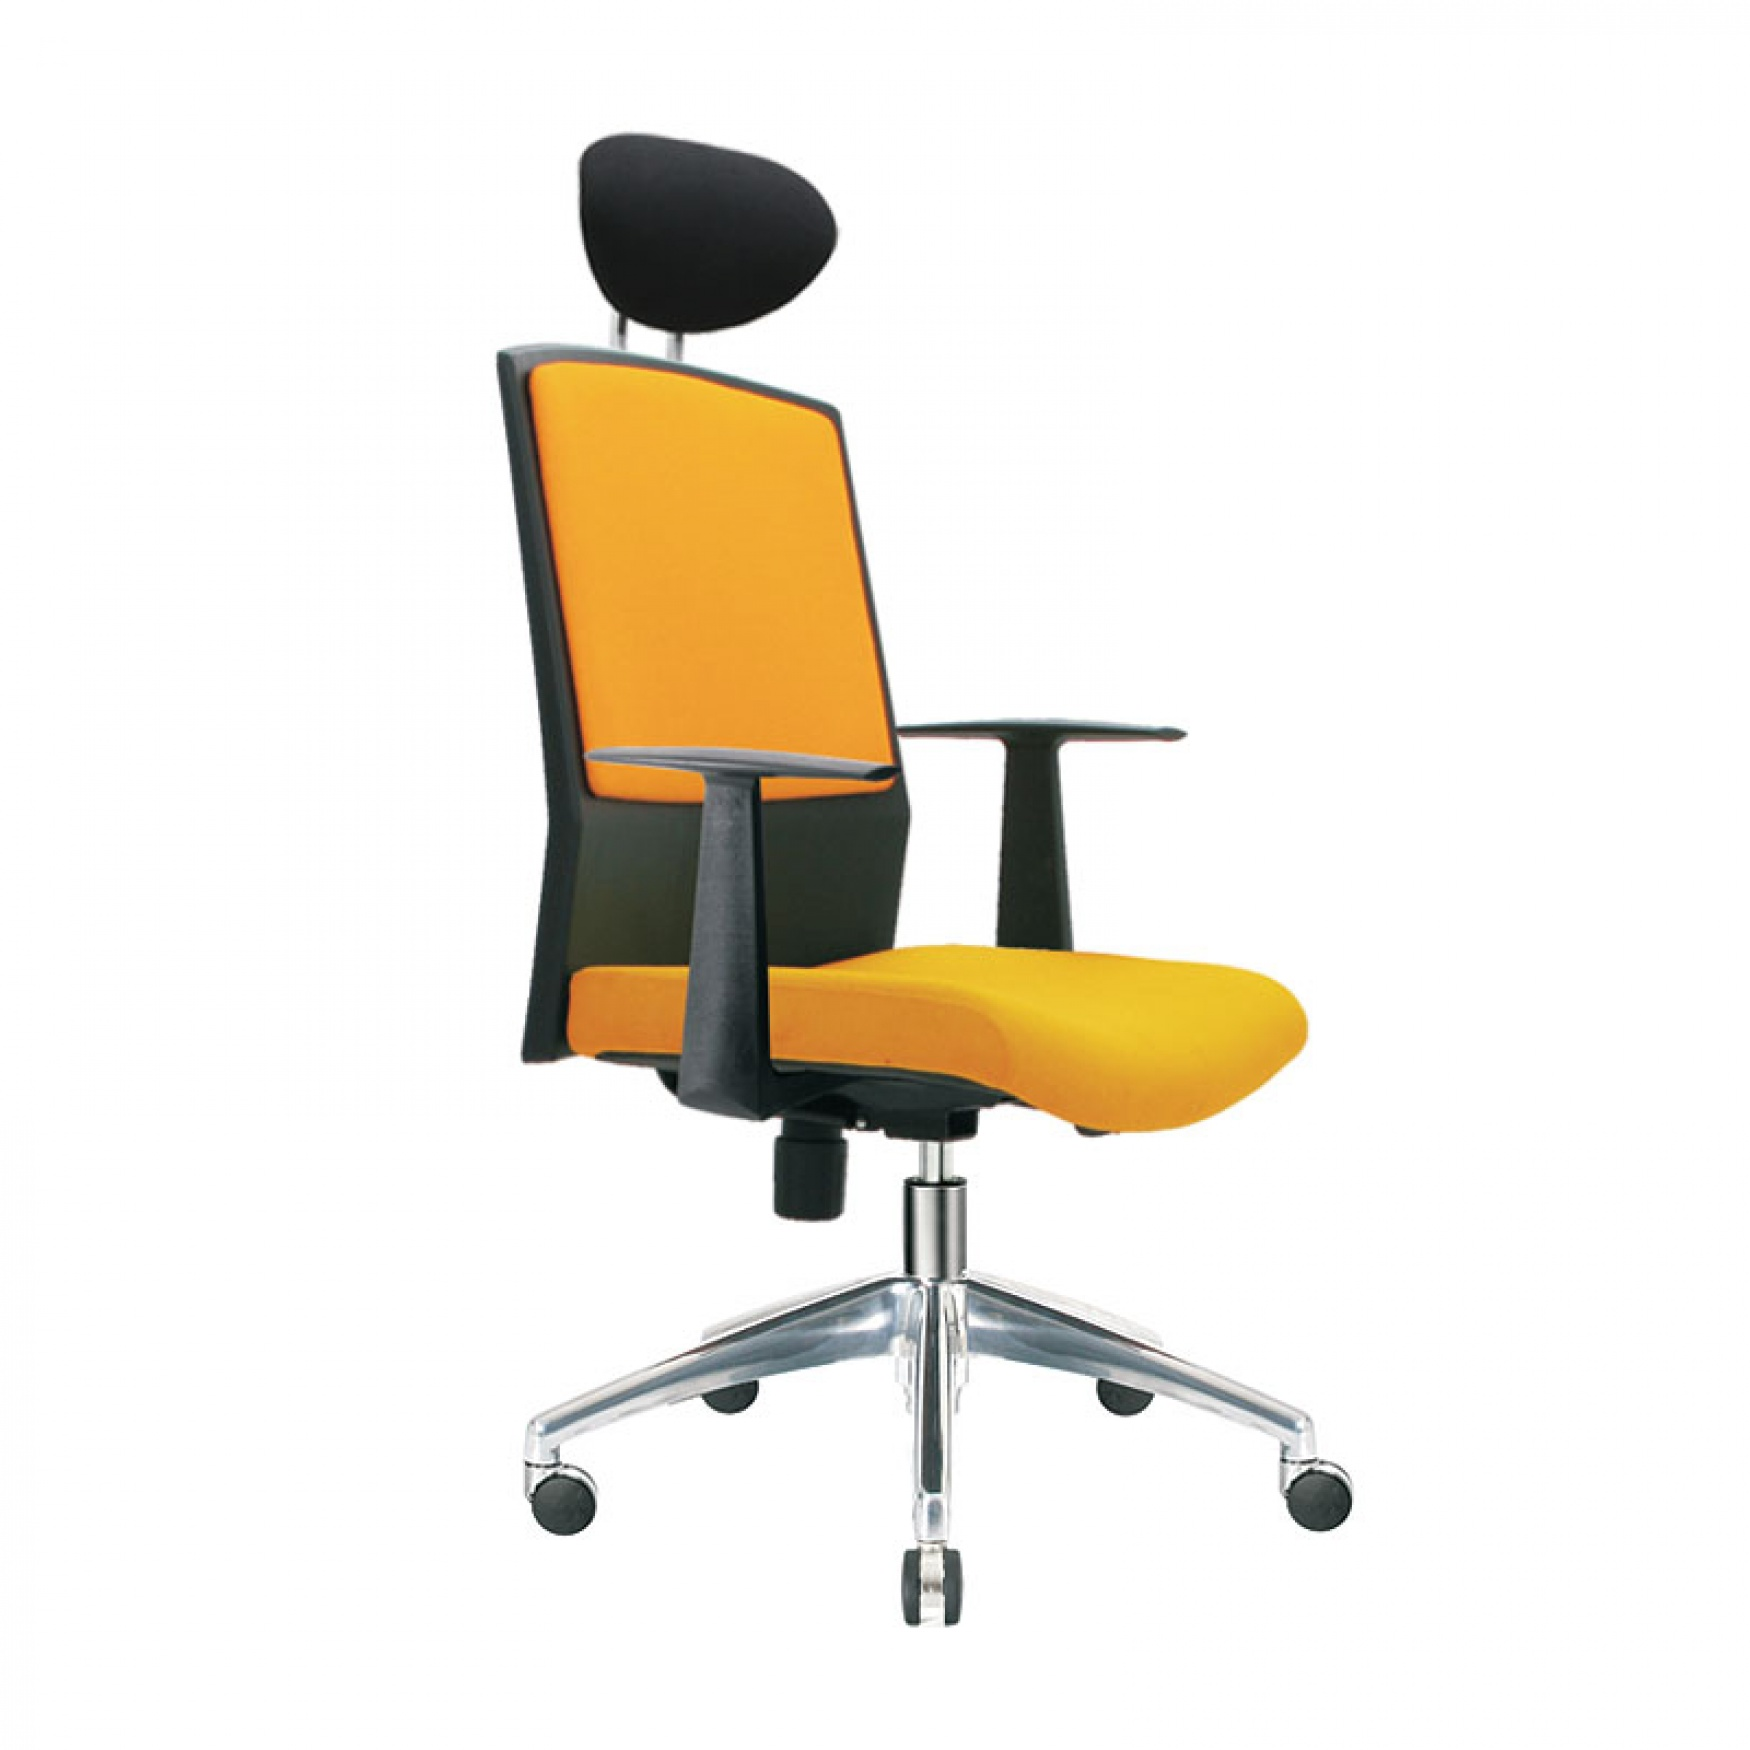 vimax 1 cr oscar indachi office chairs office products